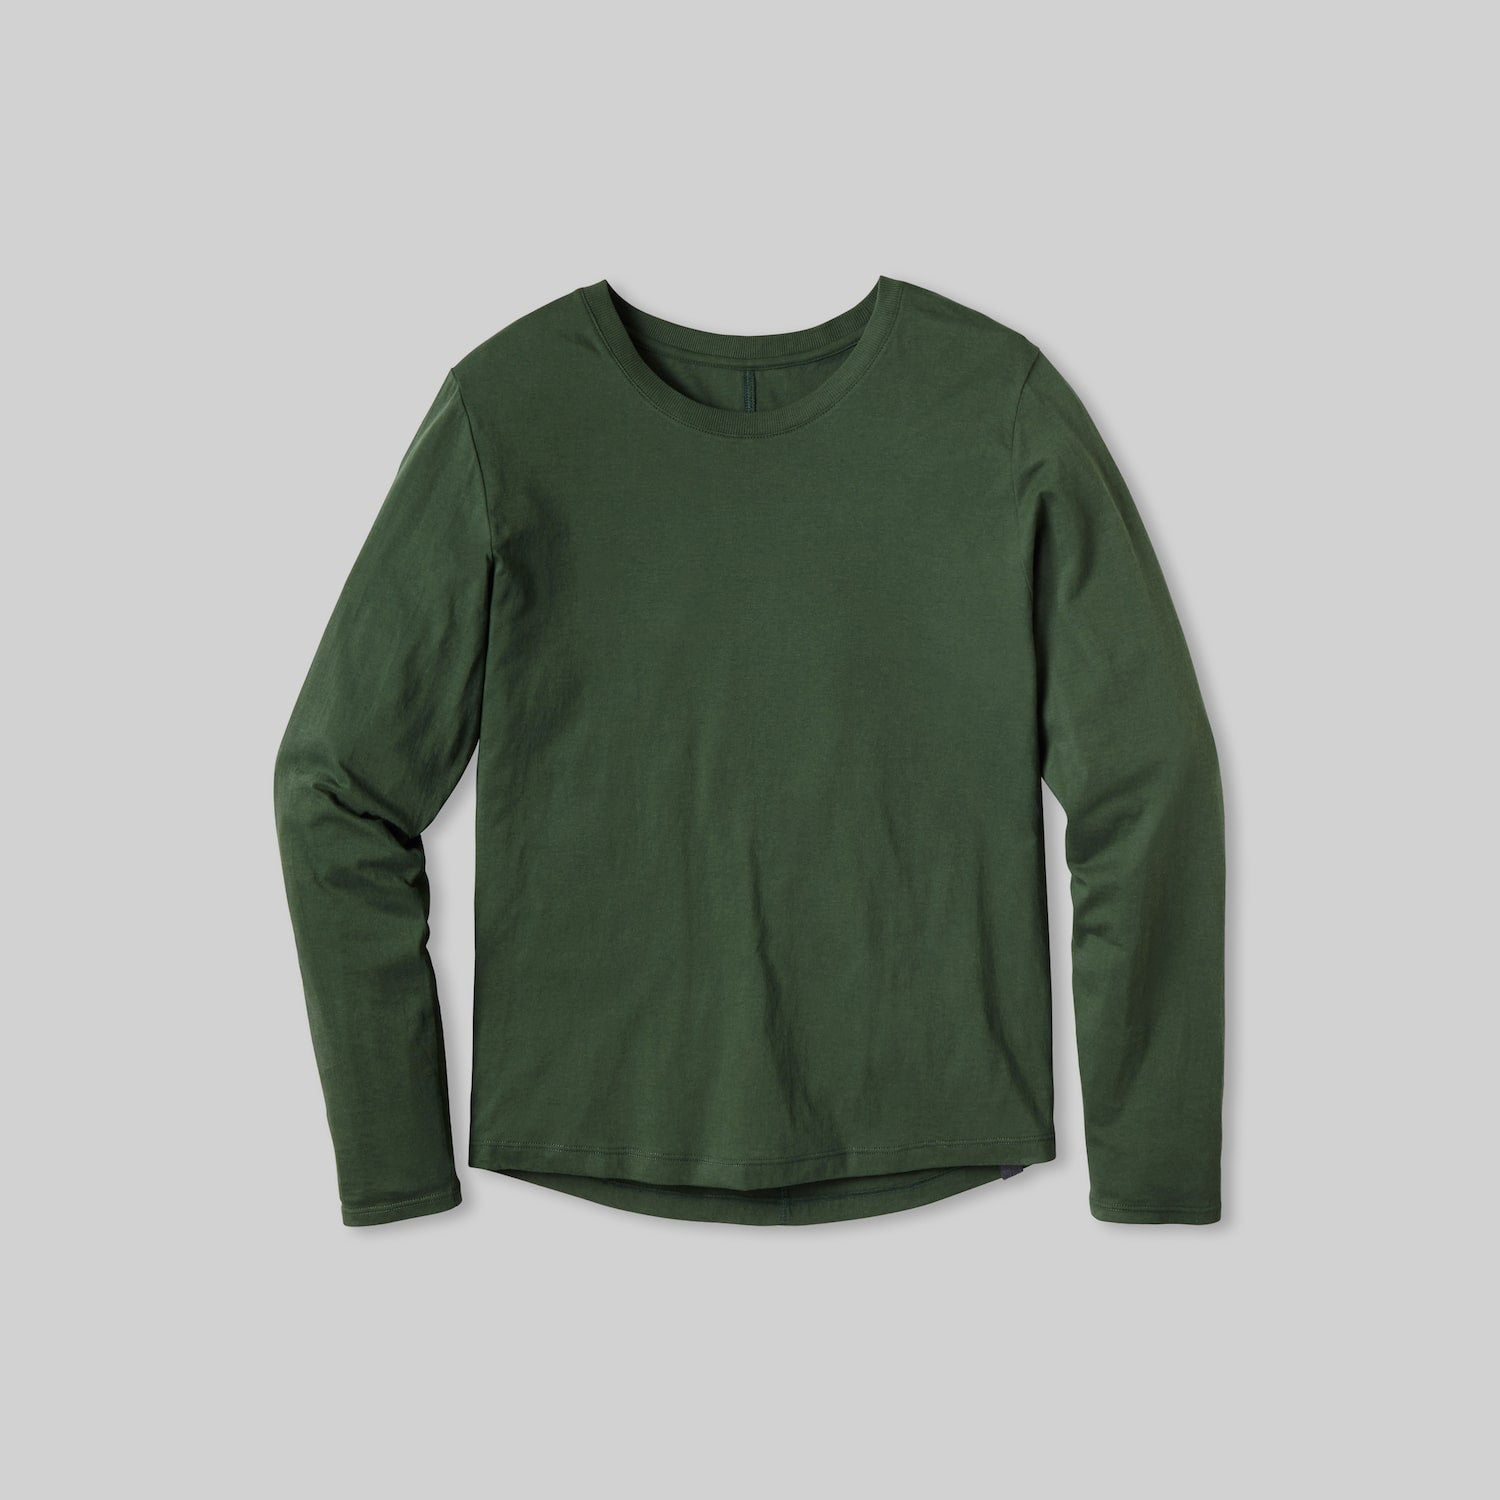 Lahgo Sleepwear Organic Long Sleeve Tee - #Forest